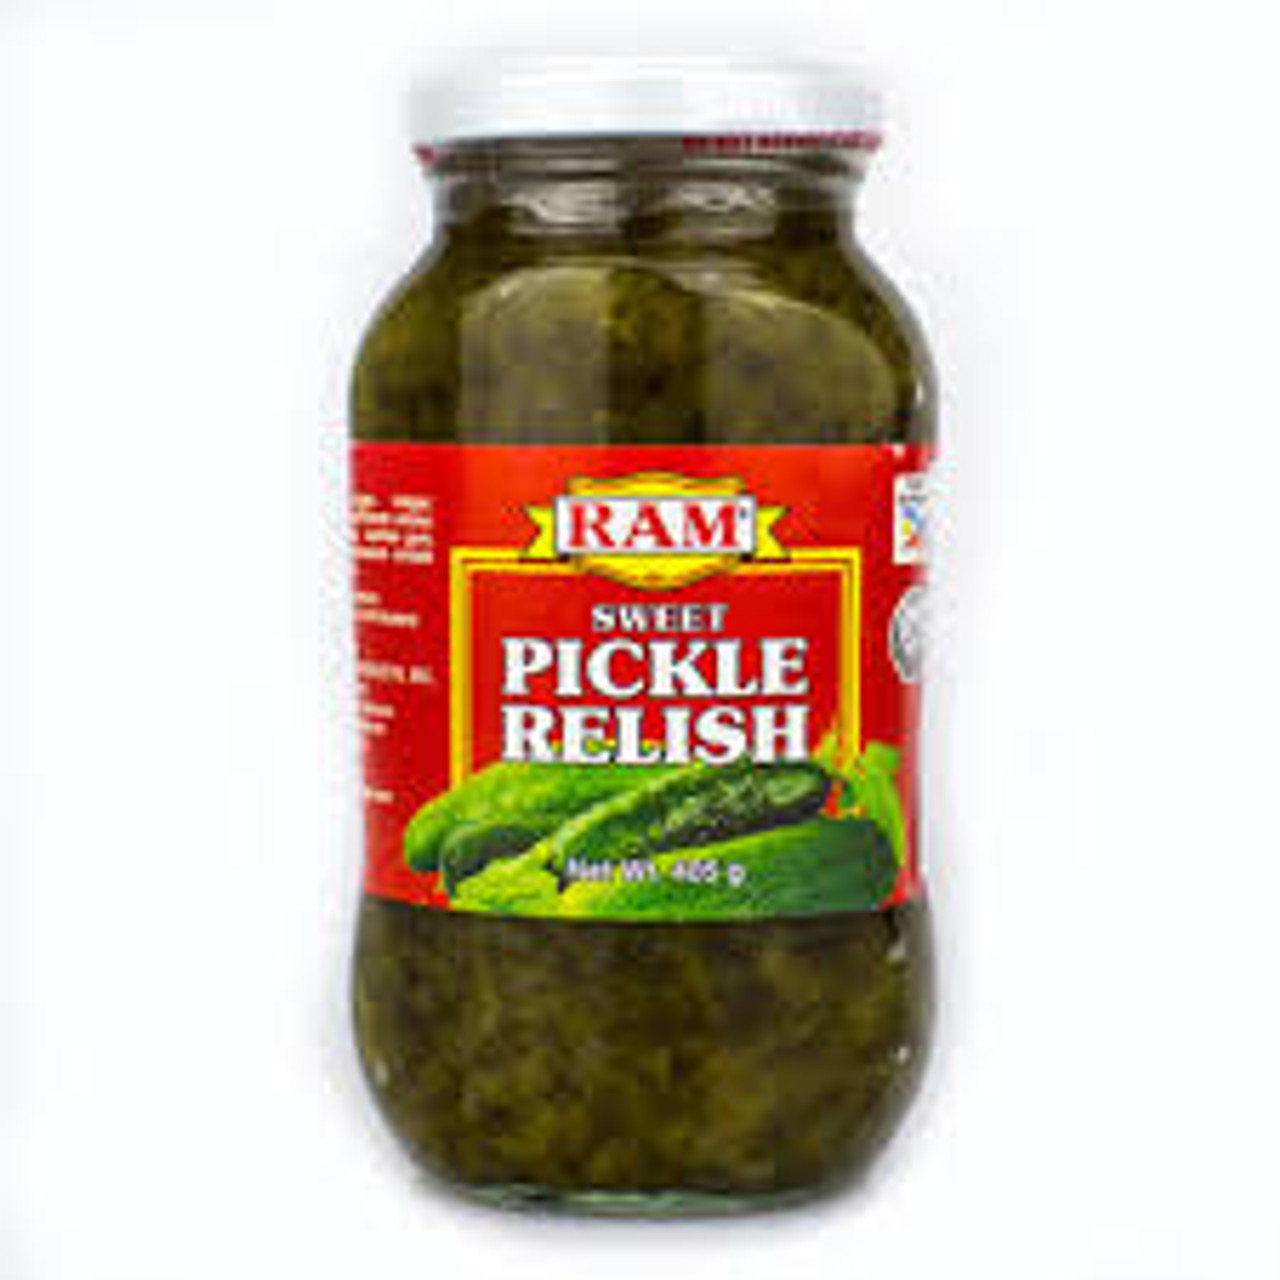 Ram Sweet Pickle Relish 400g